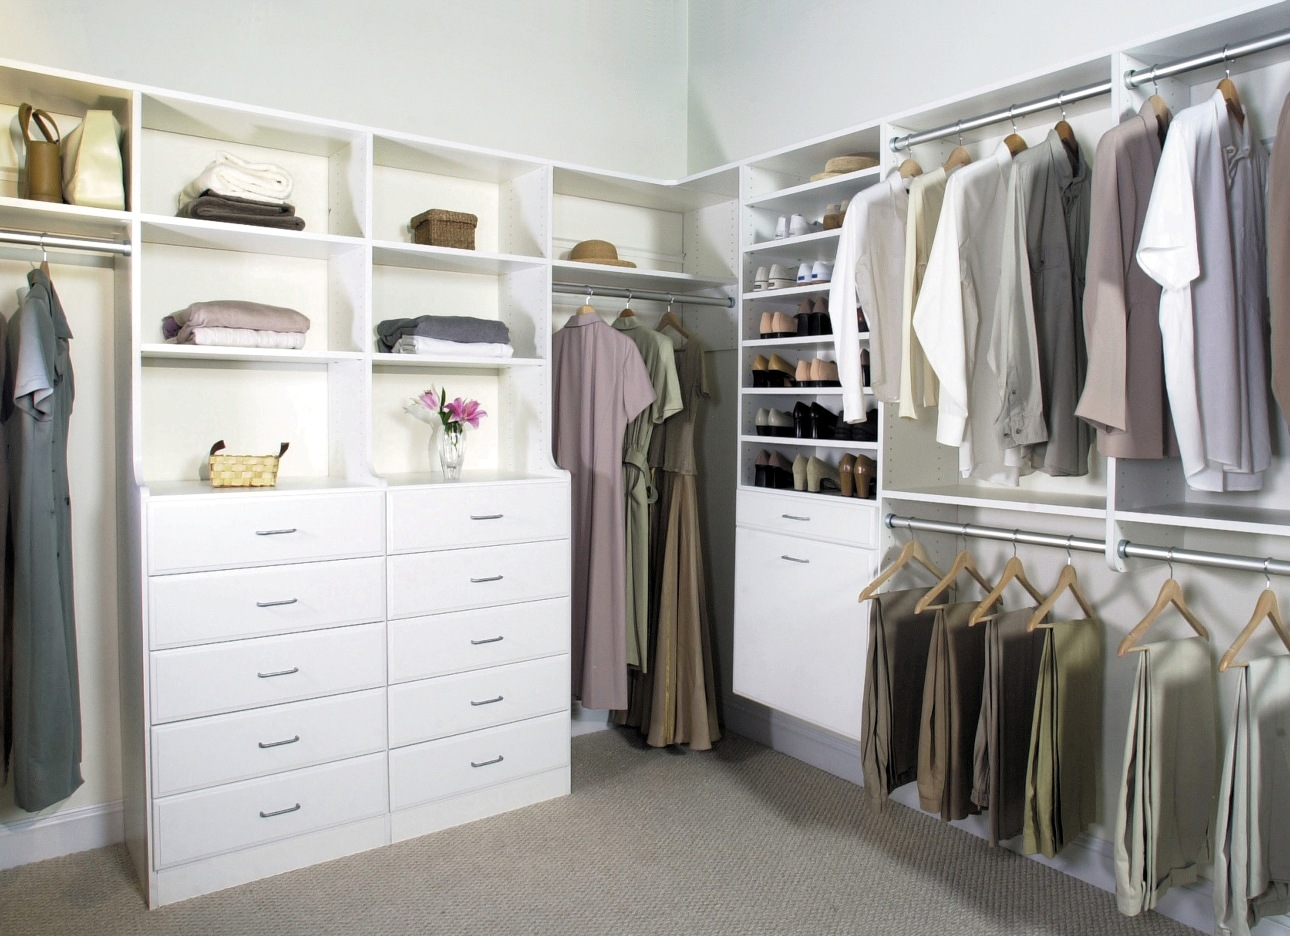 Closet decorating ideas pinterest. closet and no tub or a modestly ...